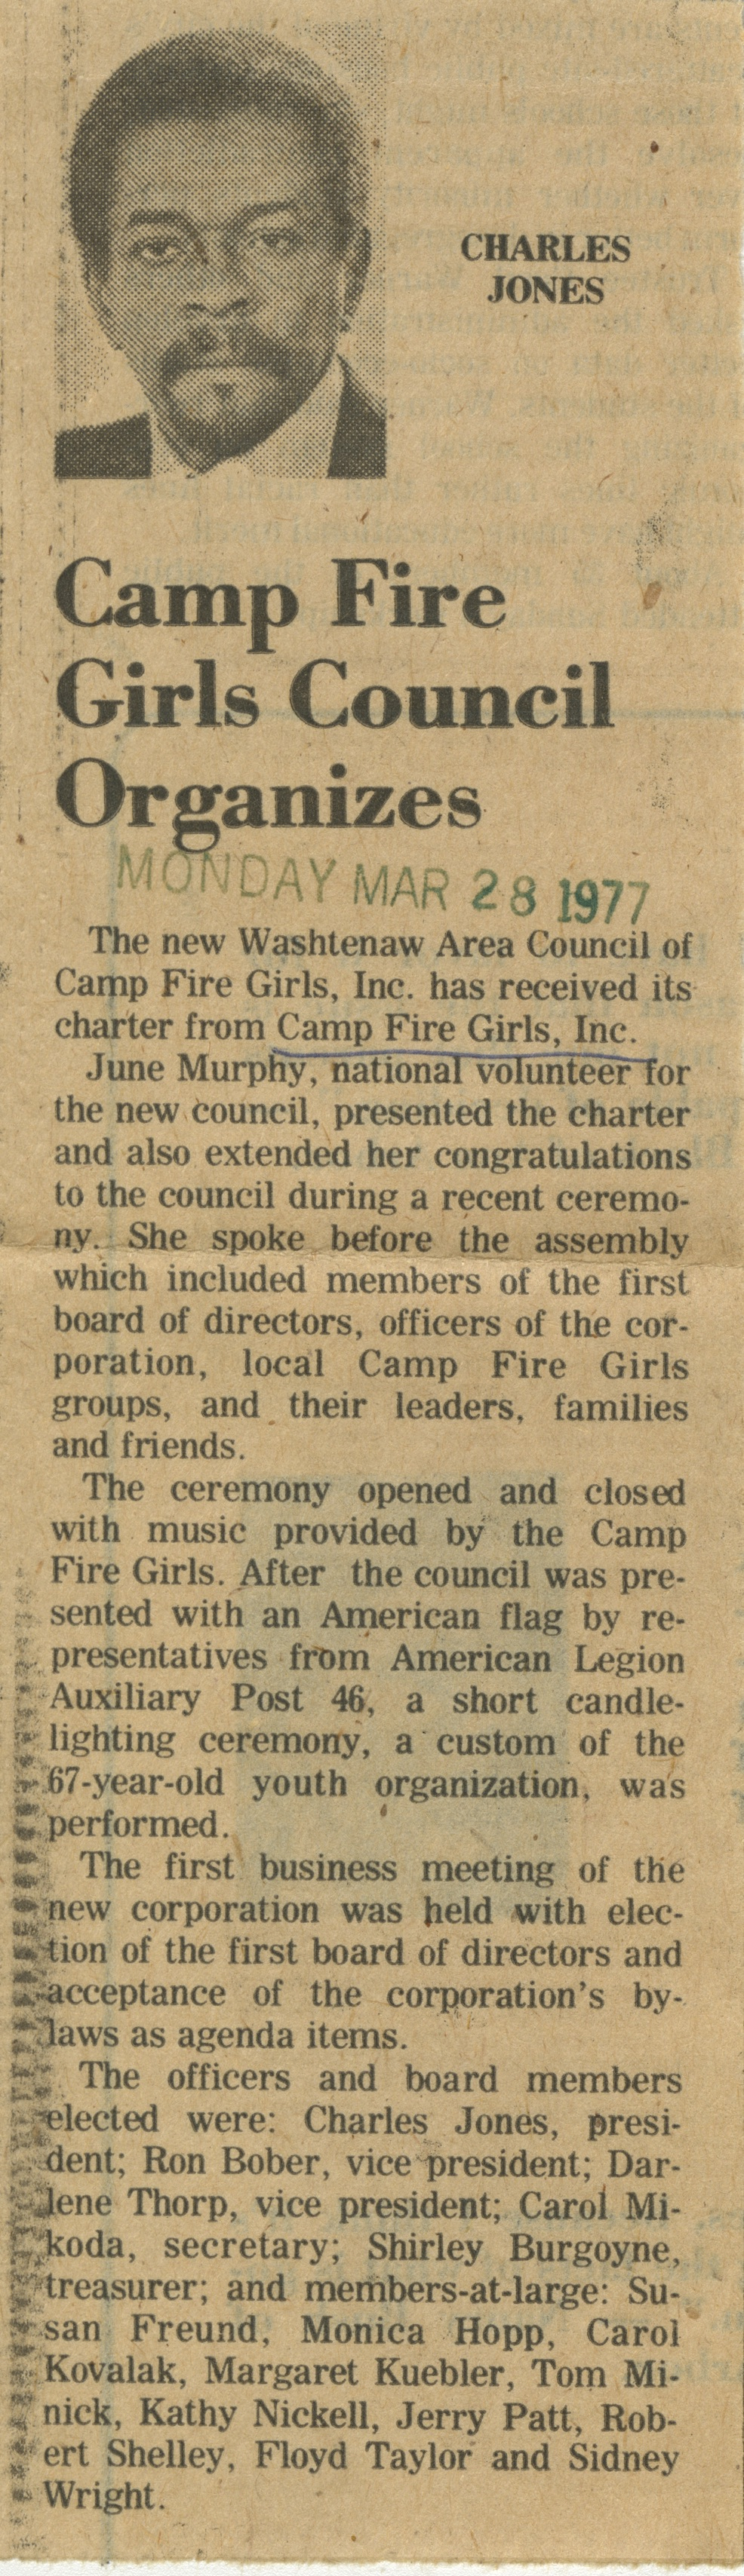 Camp Fire Girls Council Organizes image